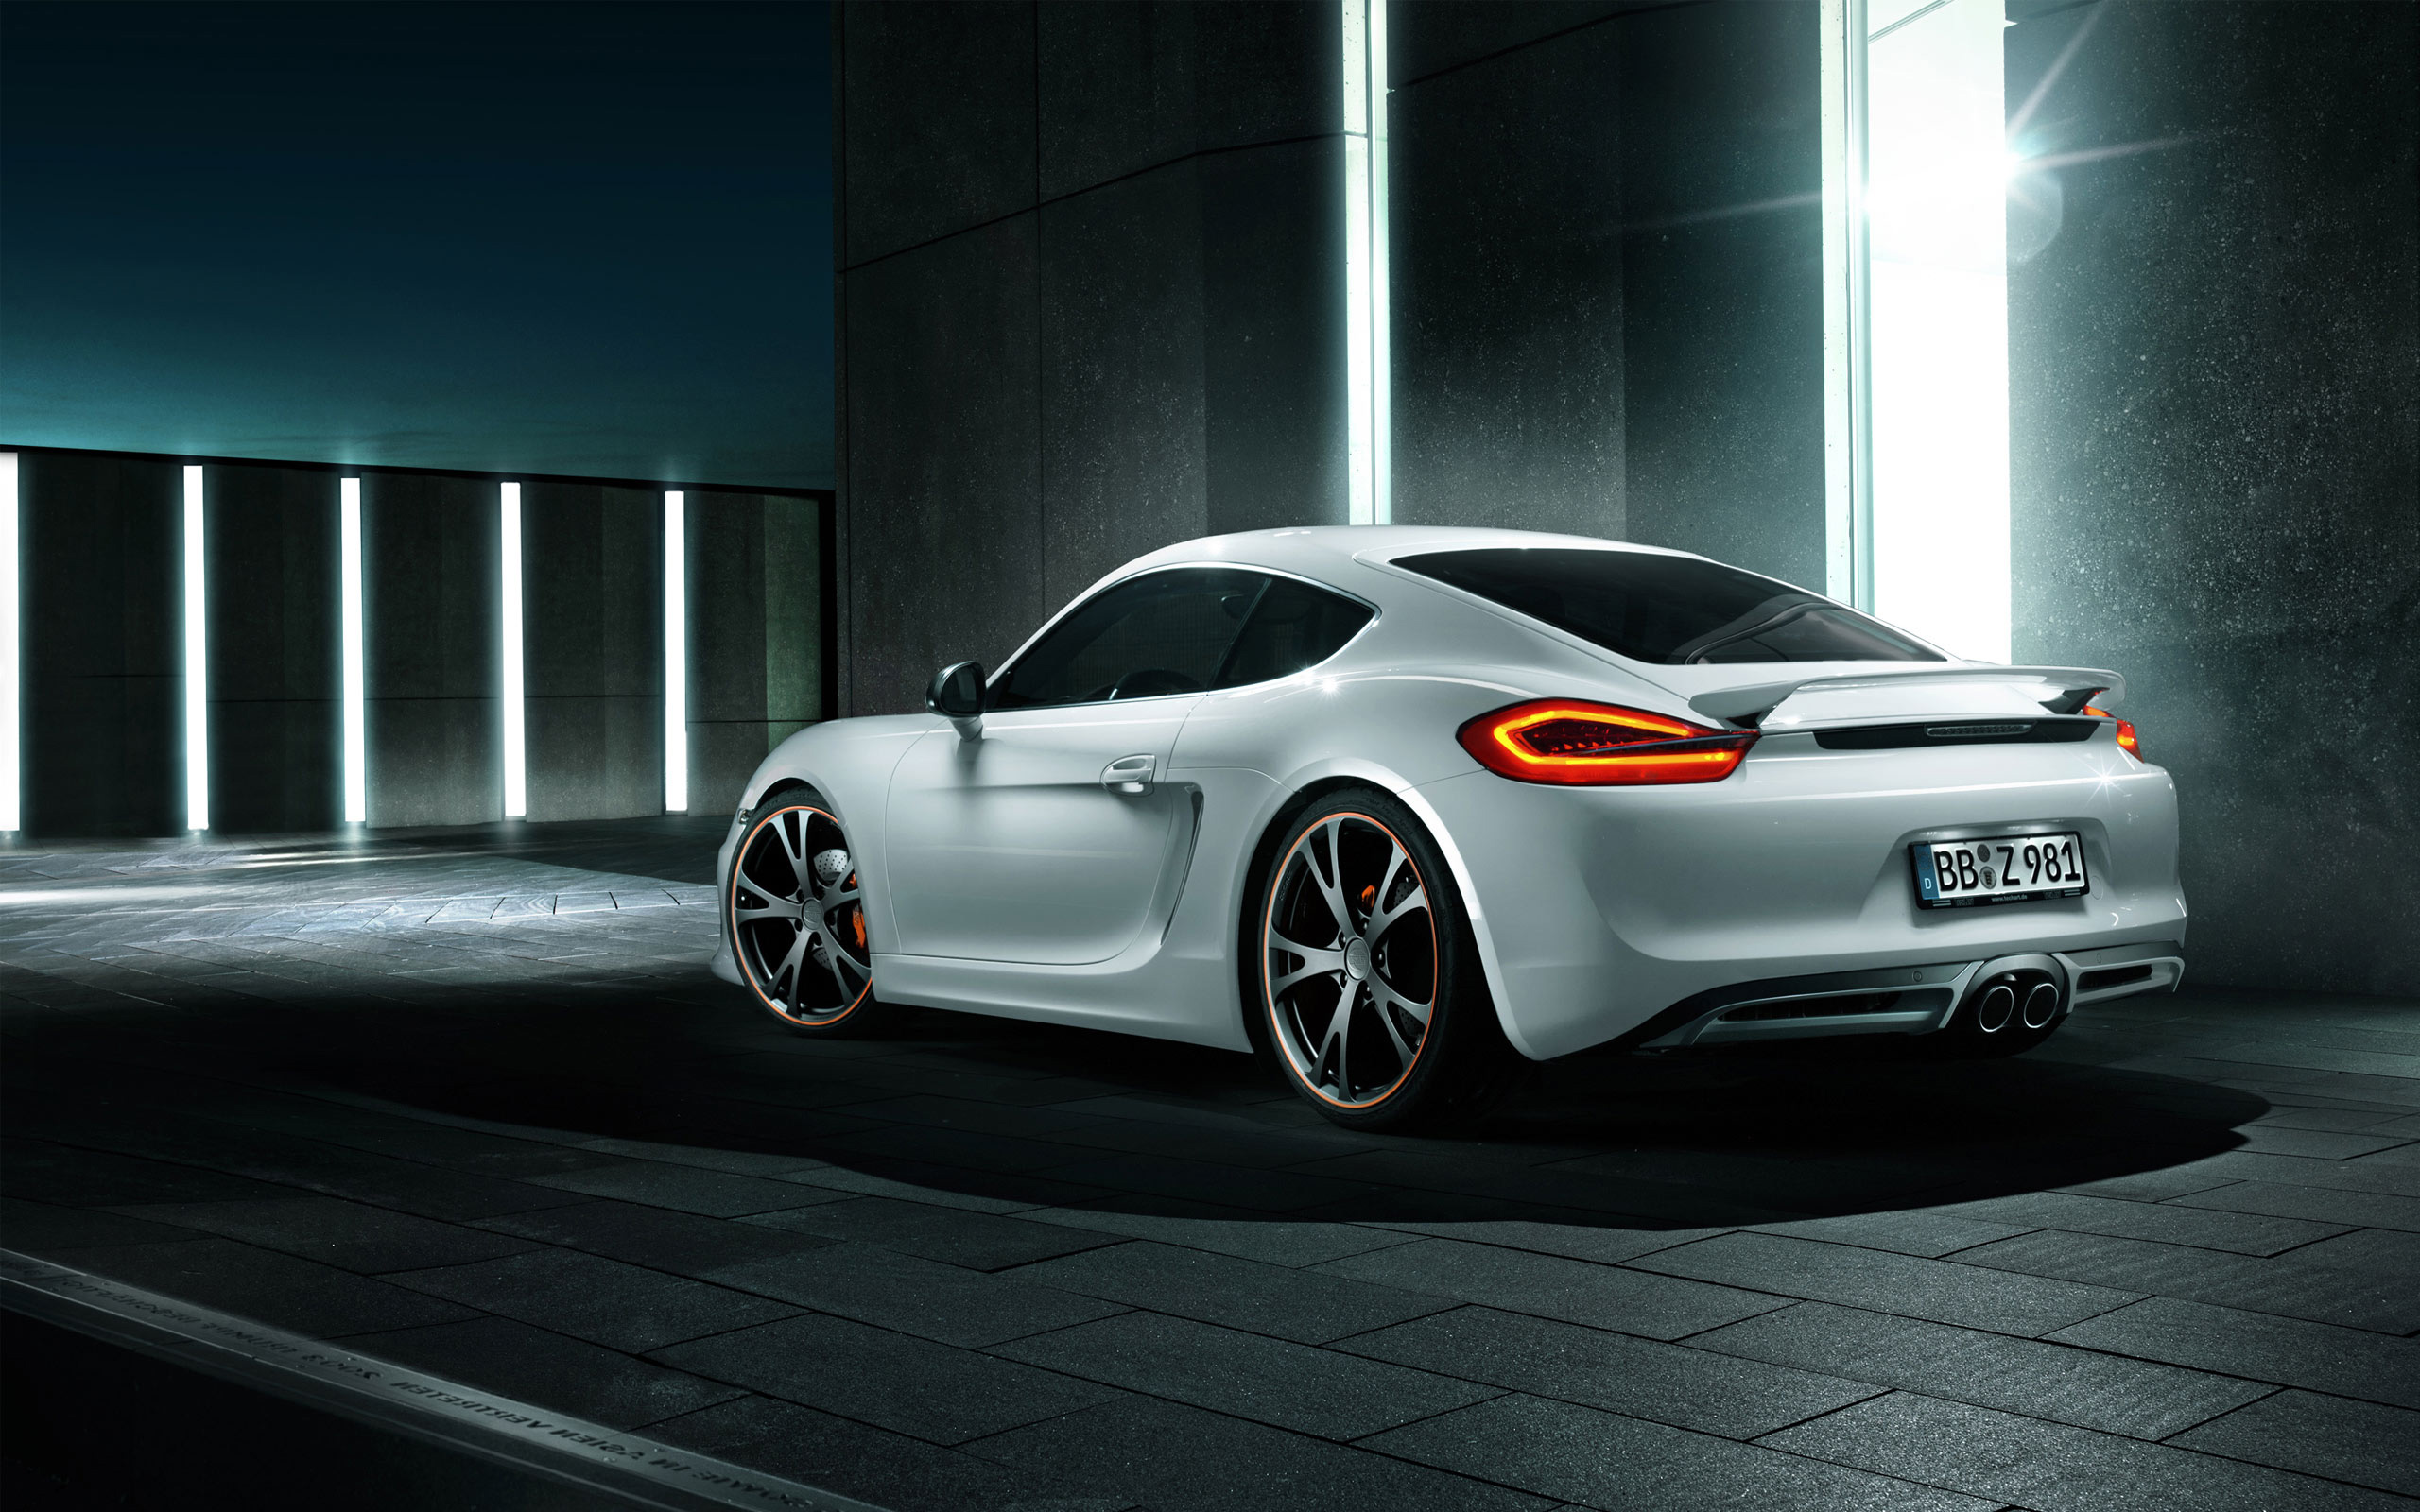 2560x1600 - Porsche Cayman Wallpapers 2